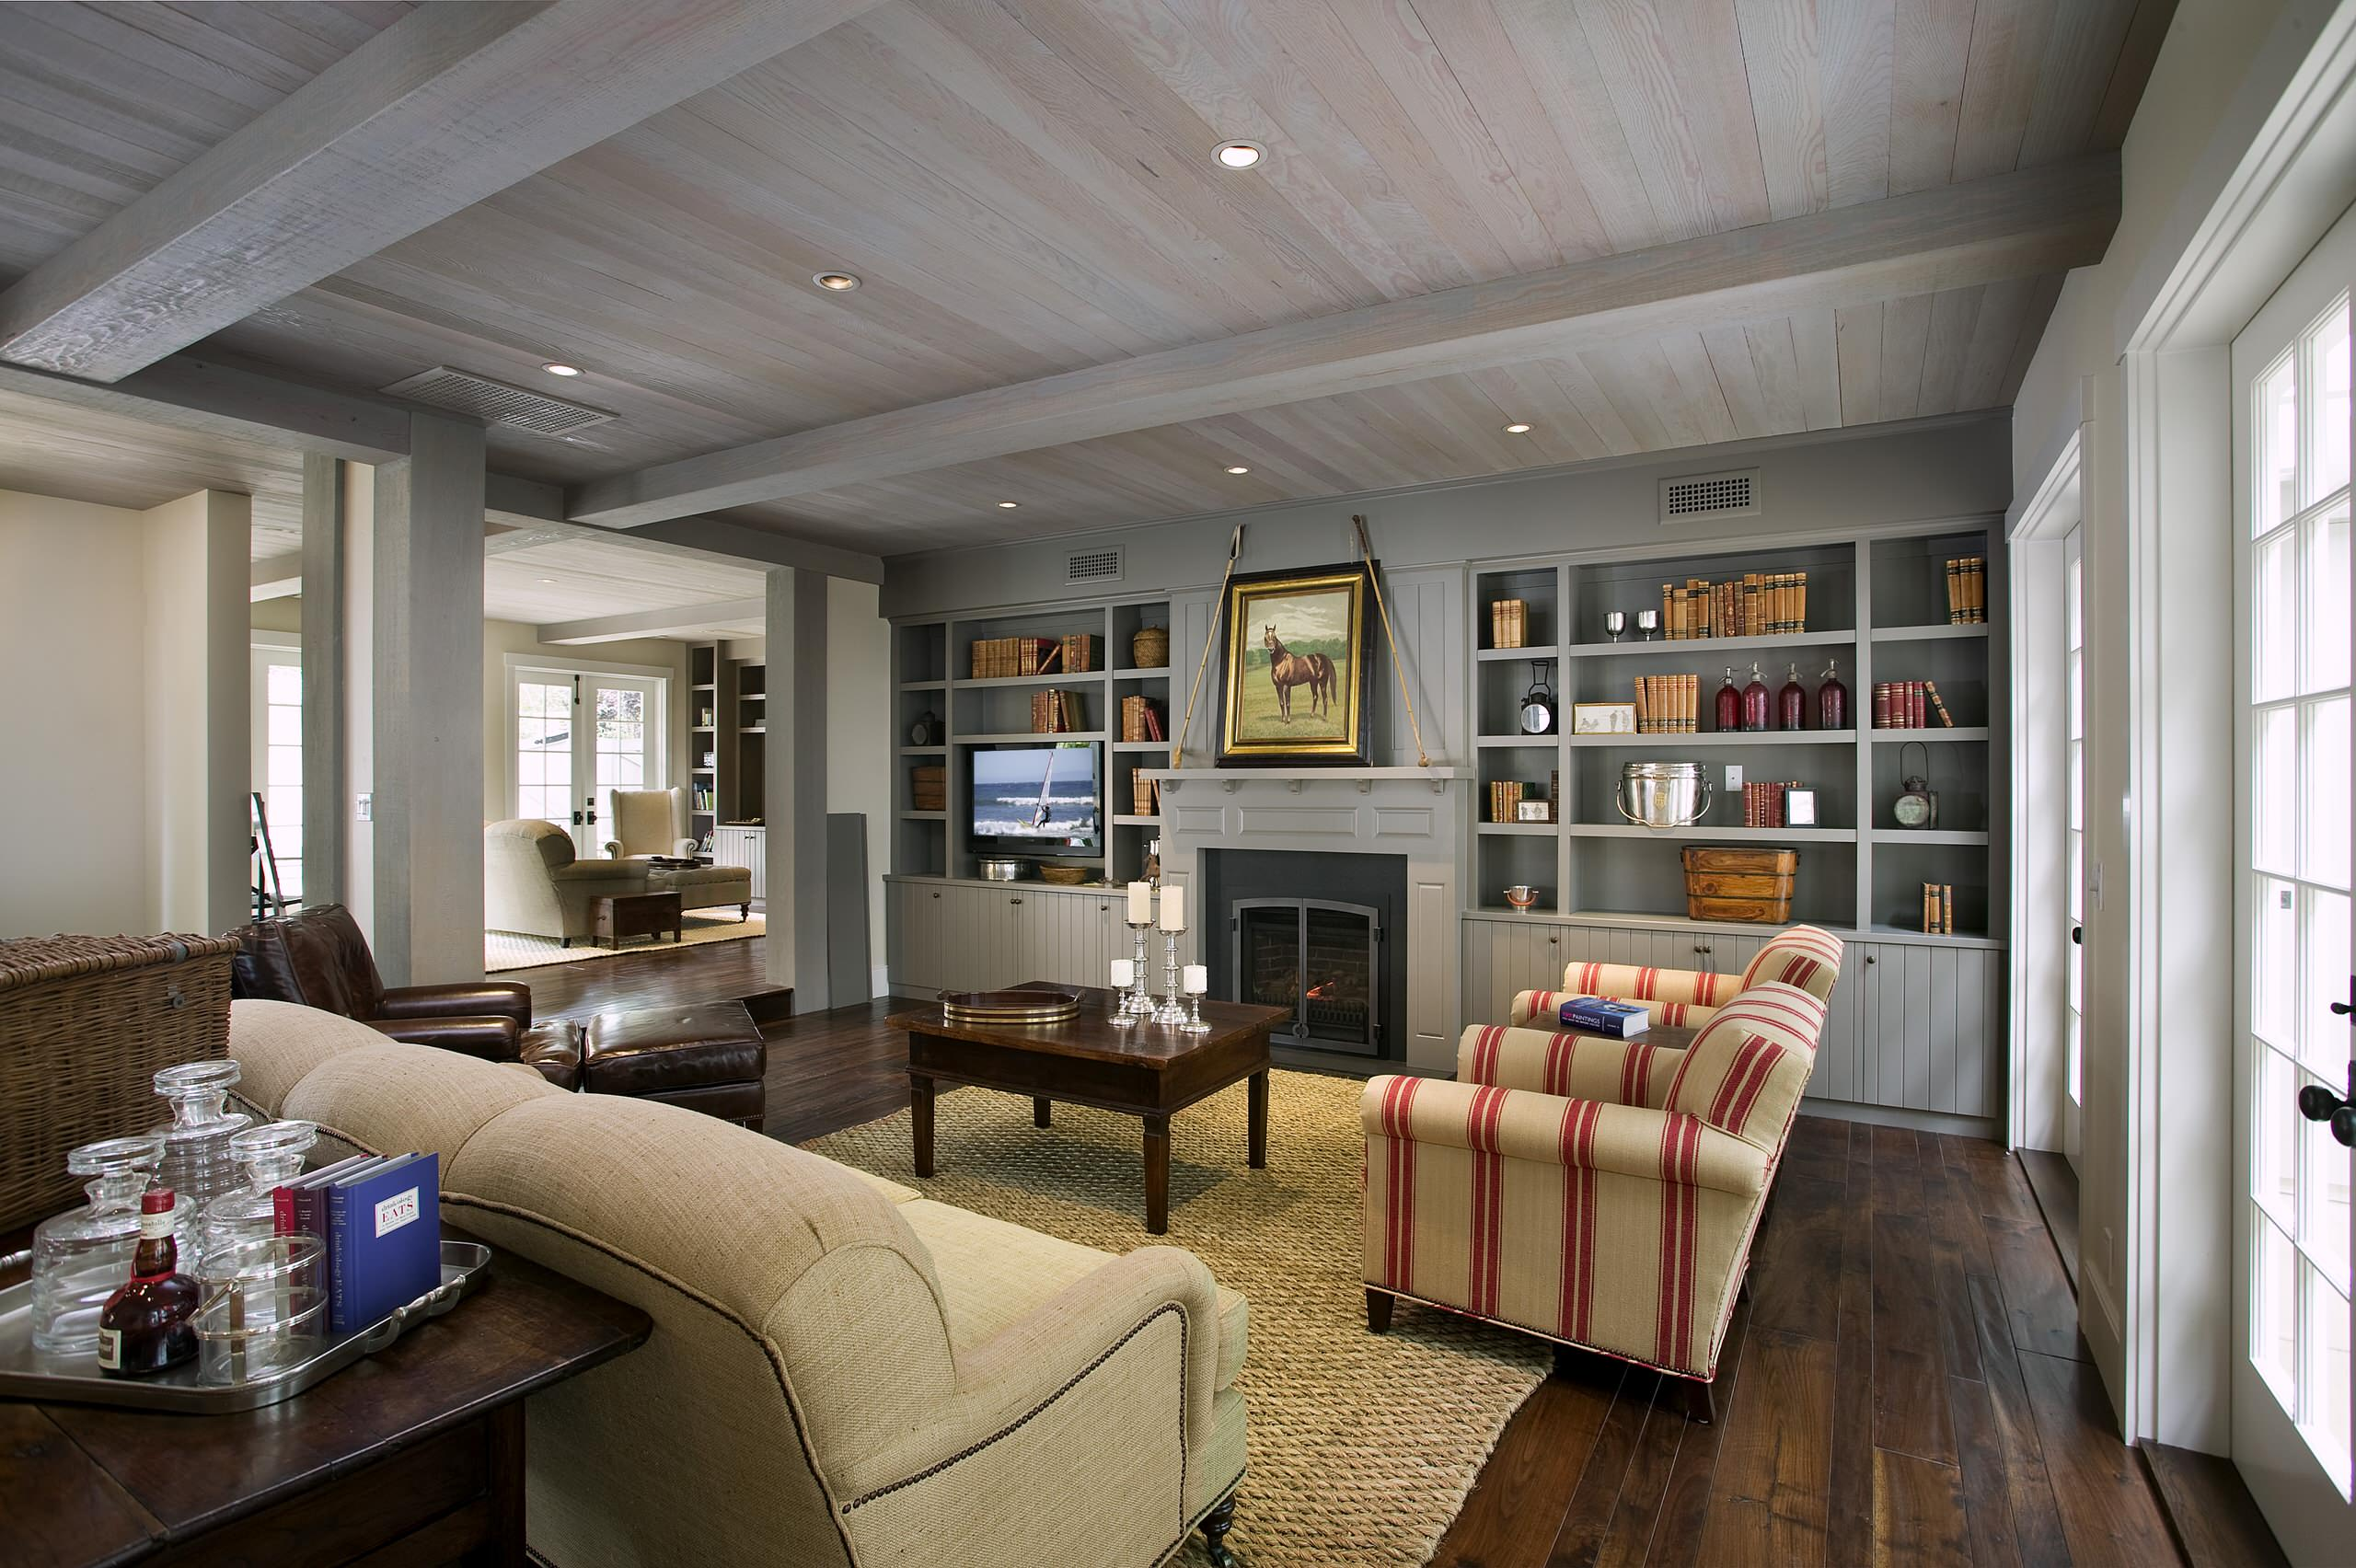 Armchairs and Accent Chairs Farmhouse Living Room Built in Bookshelf Rustic Wood Floor Whitewashed Ceiling